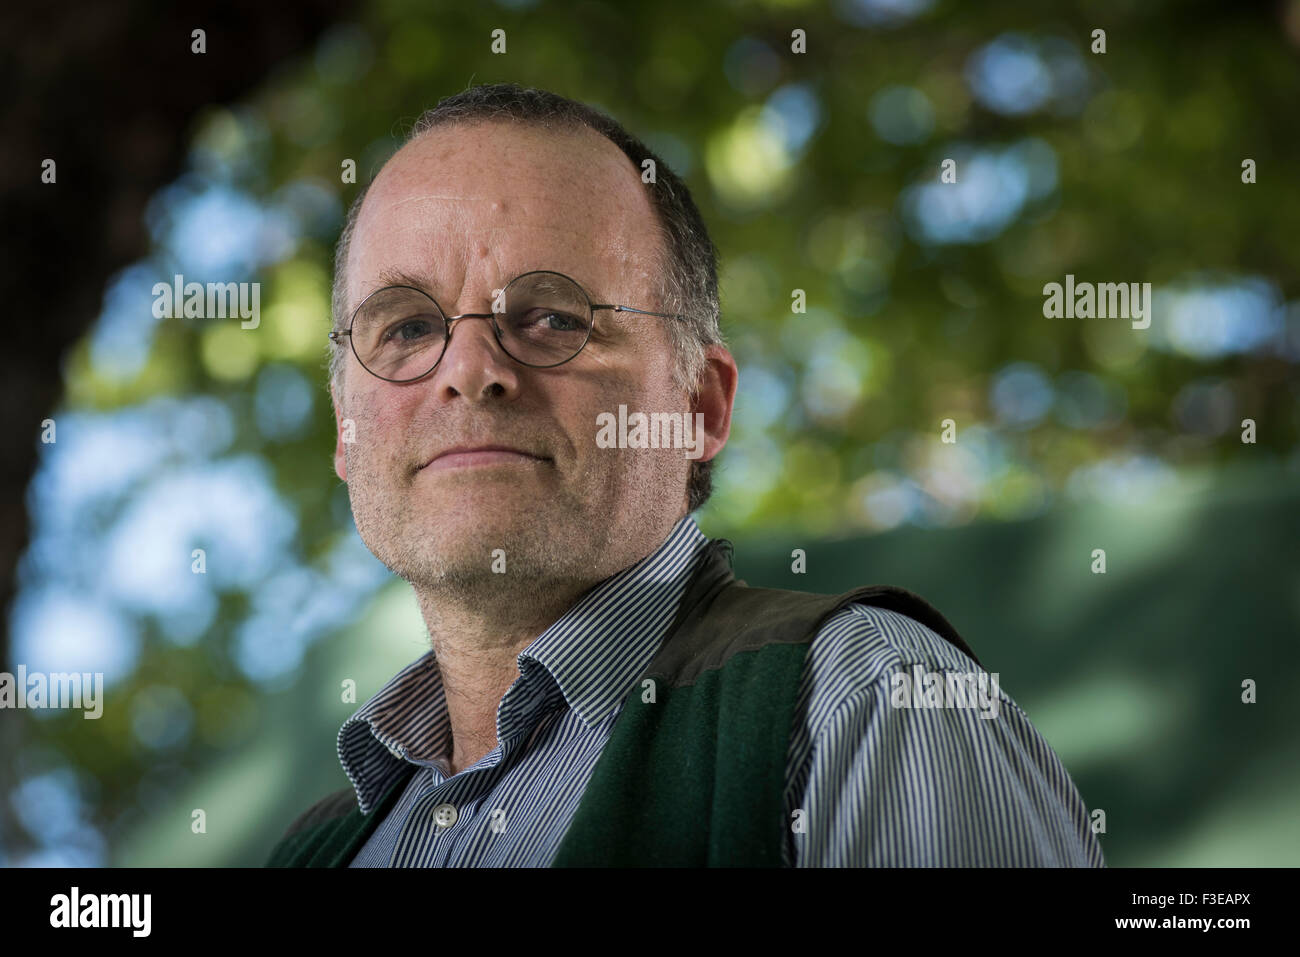 Writer and researcher Andy Wightman. - Stock Image